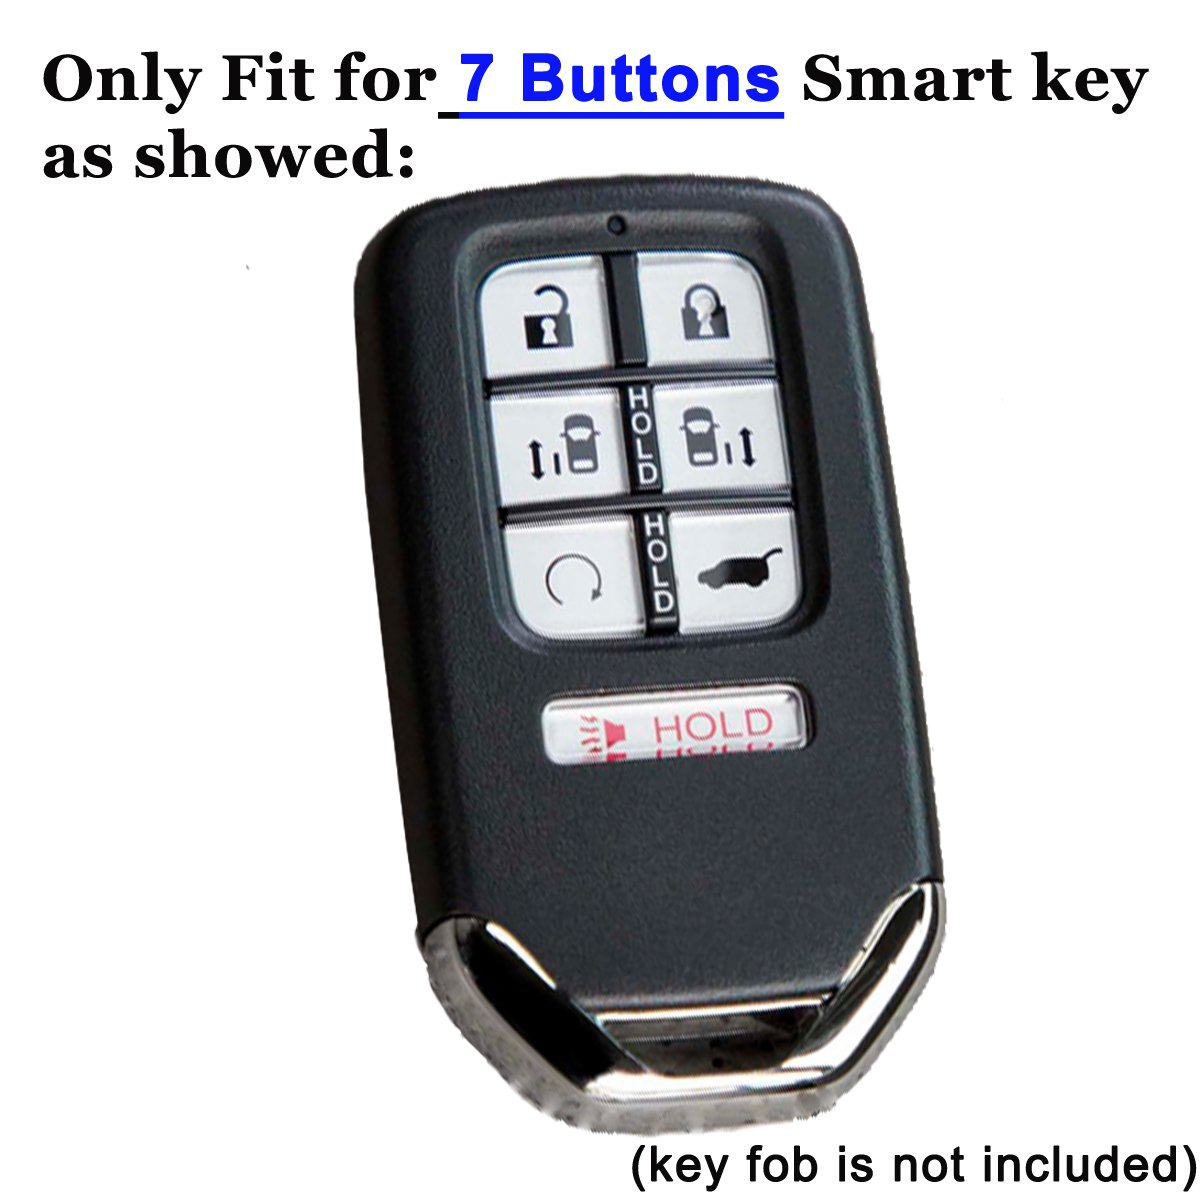 2Pcs Coolbestda Rubber Smart 7 Buttons Key Fob Remote Cover Protector Keyless Entry Holder for 2018 Honda Odyssey elite ex by Coolbestda (Image #2)